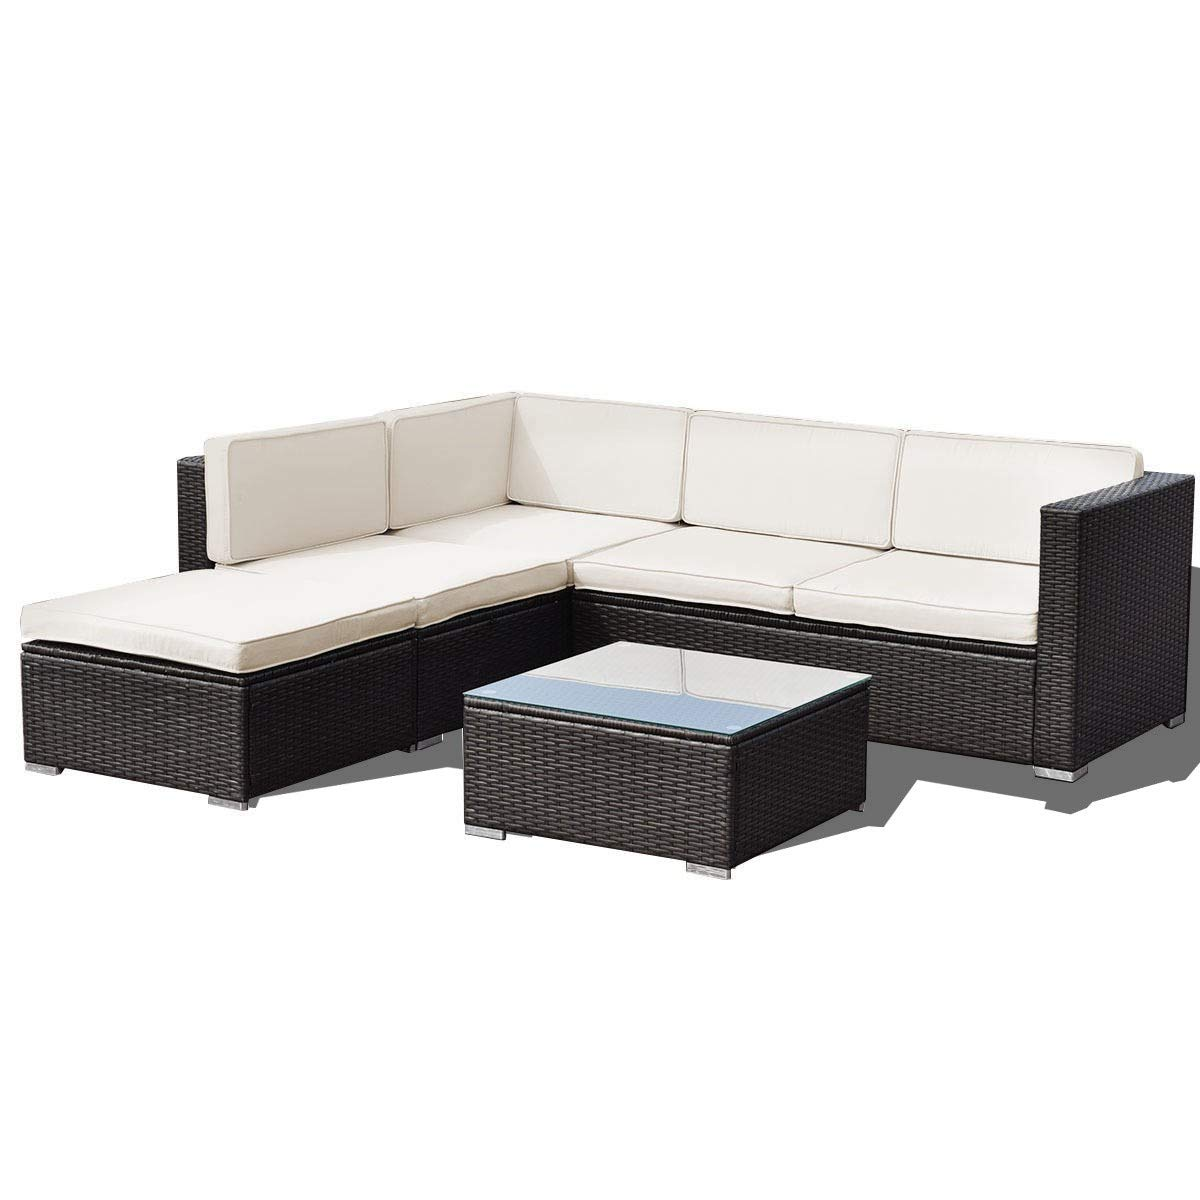 MD Group 4 pcs Patio Rattan Cushioned Furniture Set